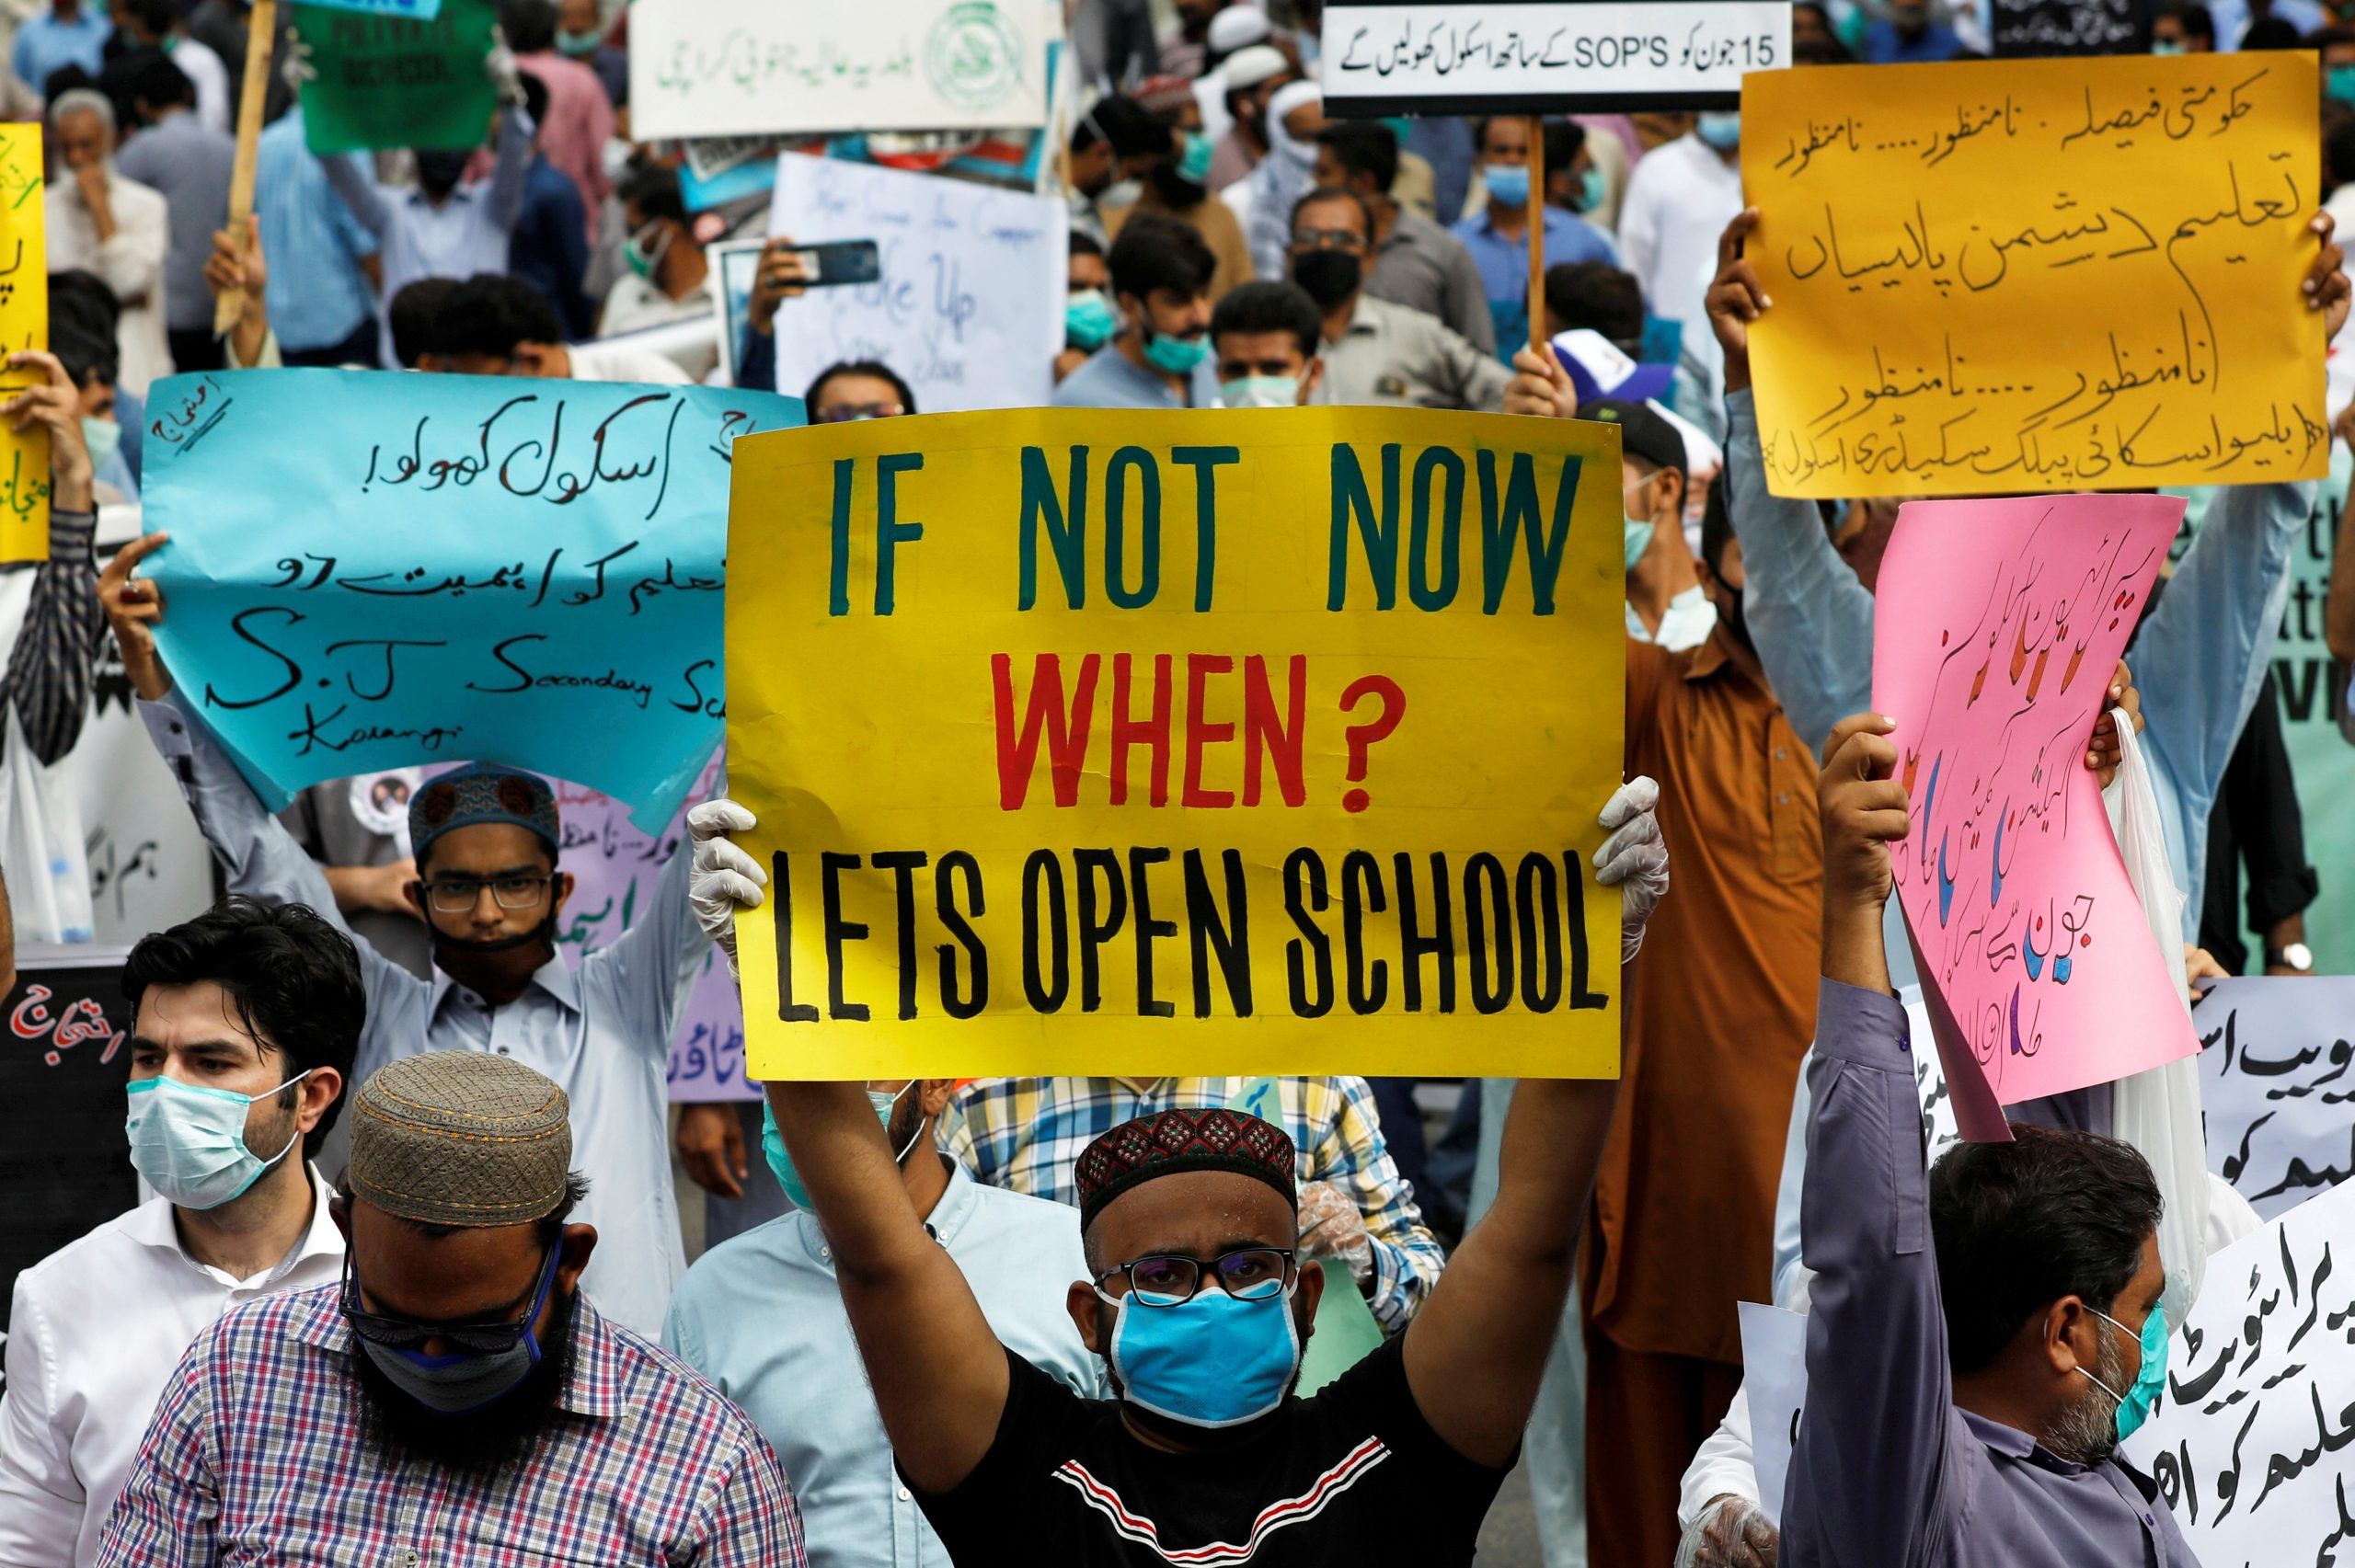 FILE PHOTO: Teachers of private schools wear protective masks as they hold signs during a protest demanding the opening of schools, which are closed due to the spread of the coronavirus disease (COVID-19), in Karachi, Pakistan June 10, 2020. REUTERS/Akhtar Soomro/File Photo